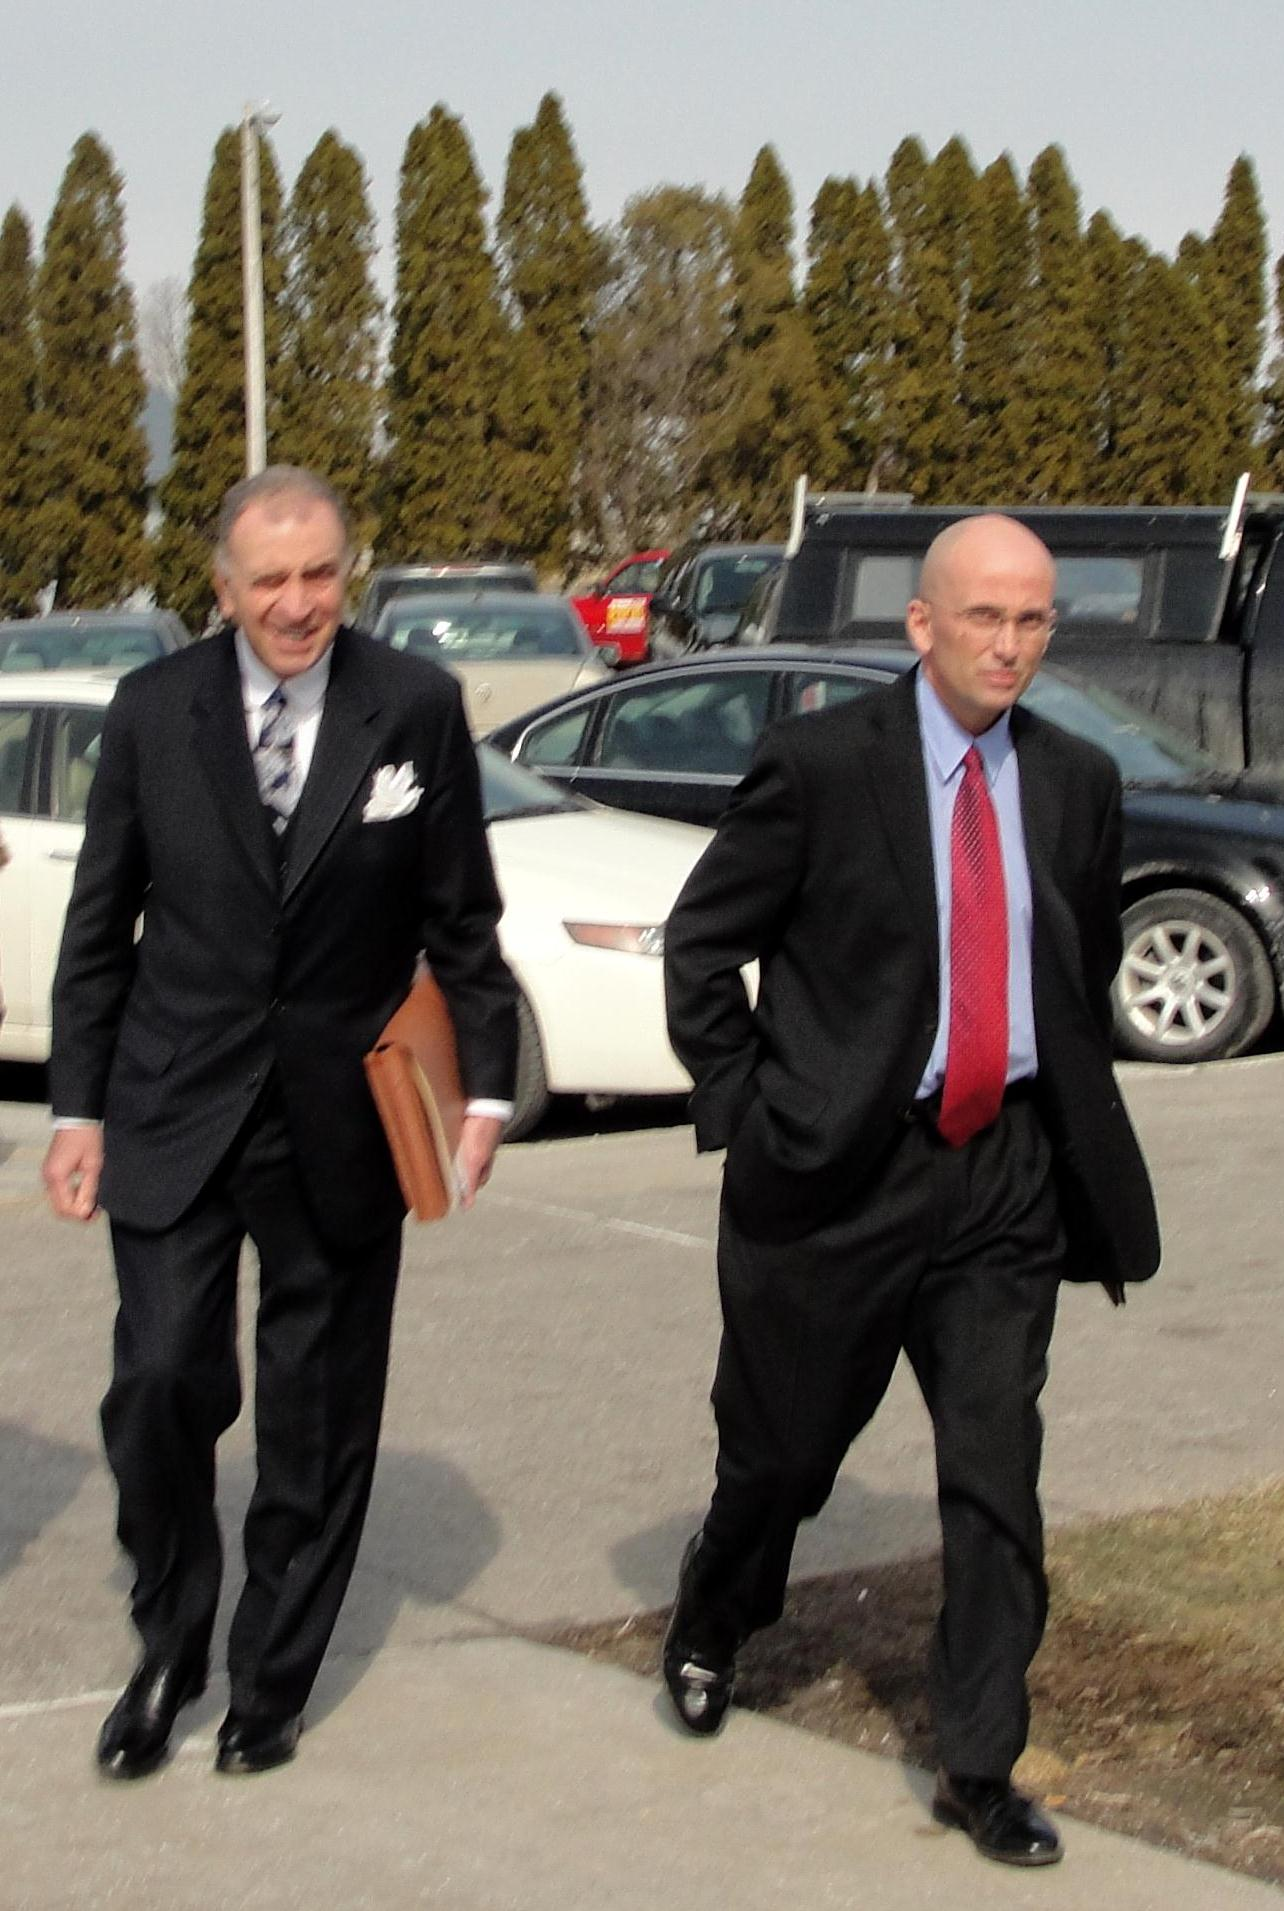 Tait trial set for July 16